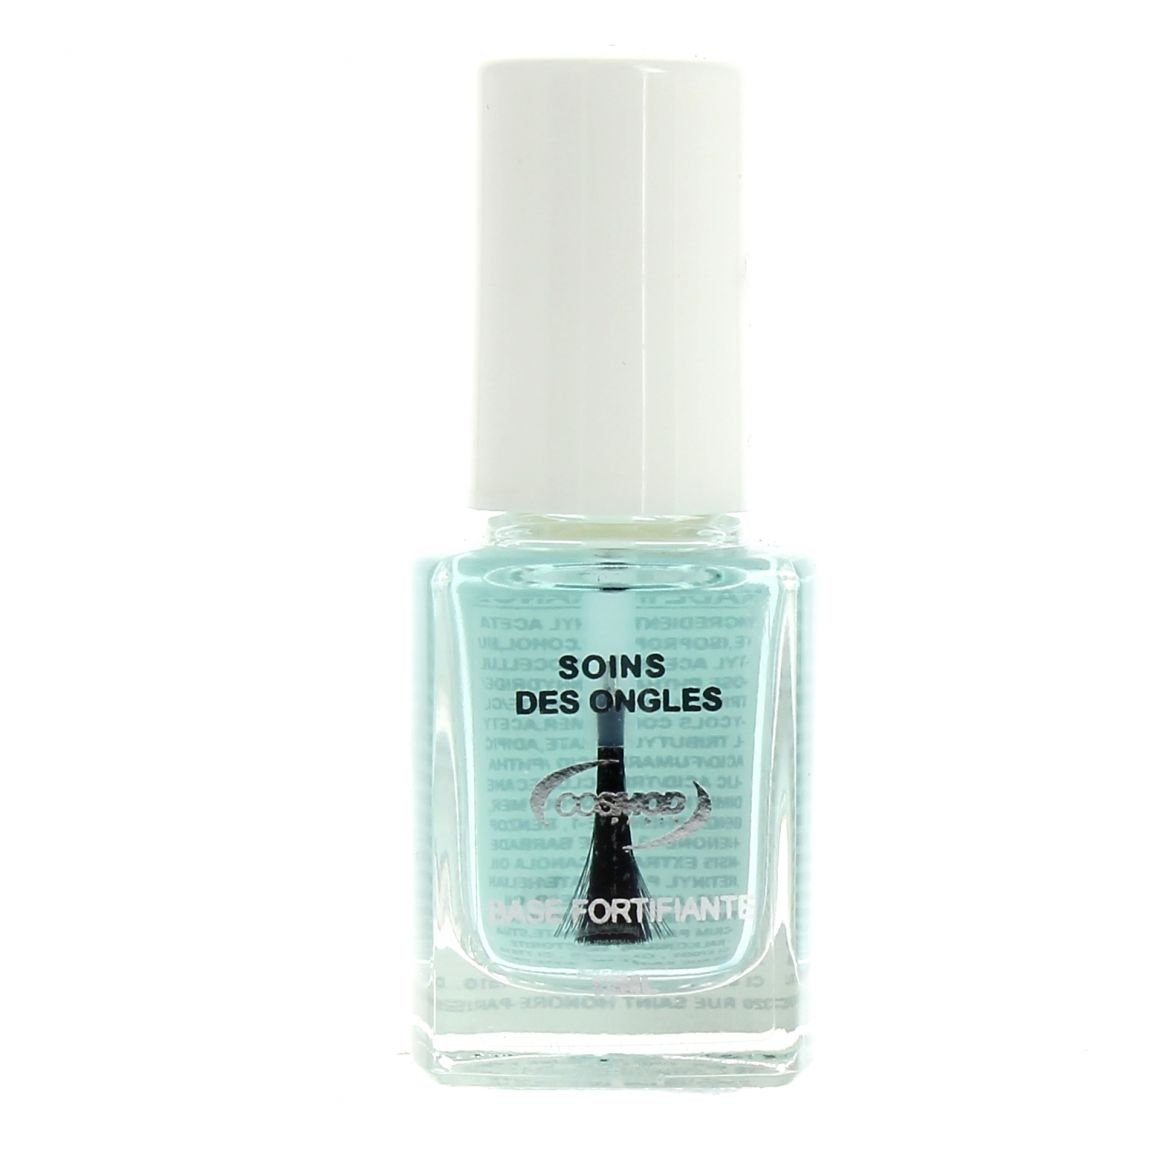 COSMOD Vernis Base Fortifiante 15 ml